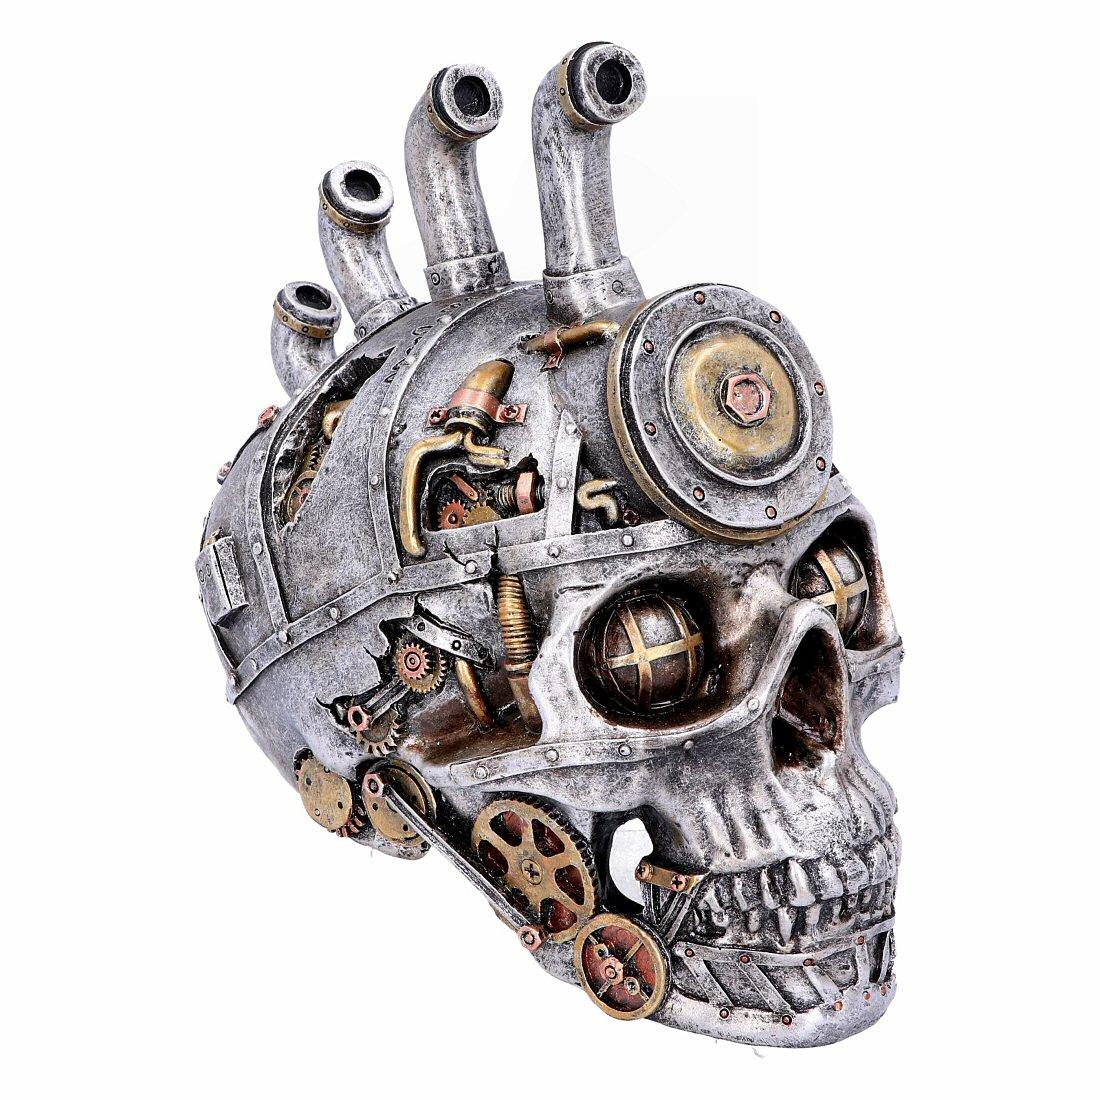 Pipe Dream - Steampunk Sculpture - Nemesis Now U4776P9